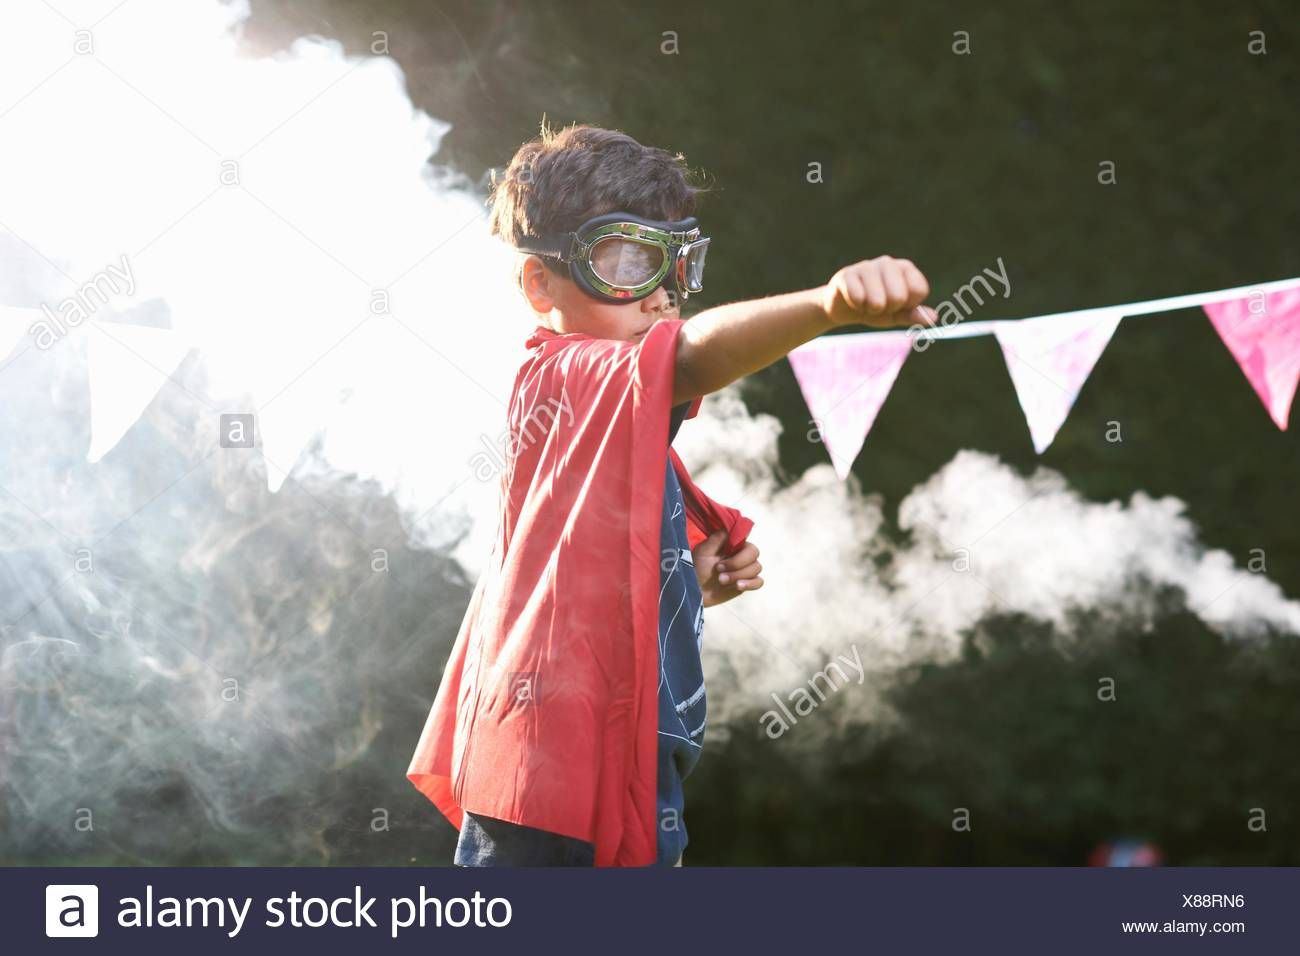 Boy wearing goggles and cape in superhero stance in front of smoke cloud - Stock Image